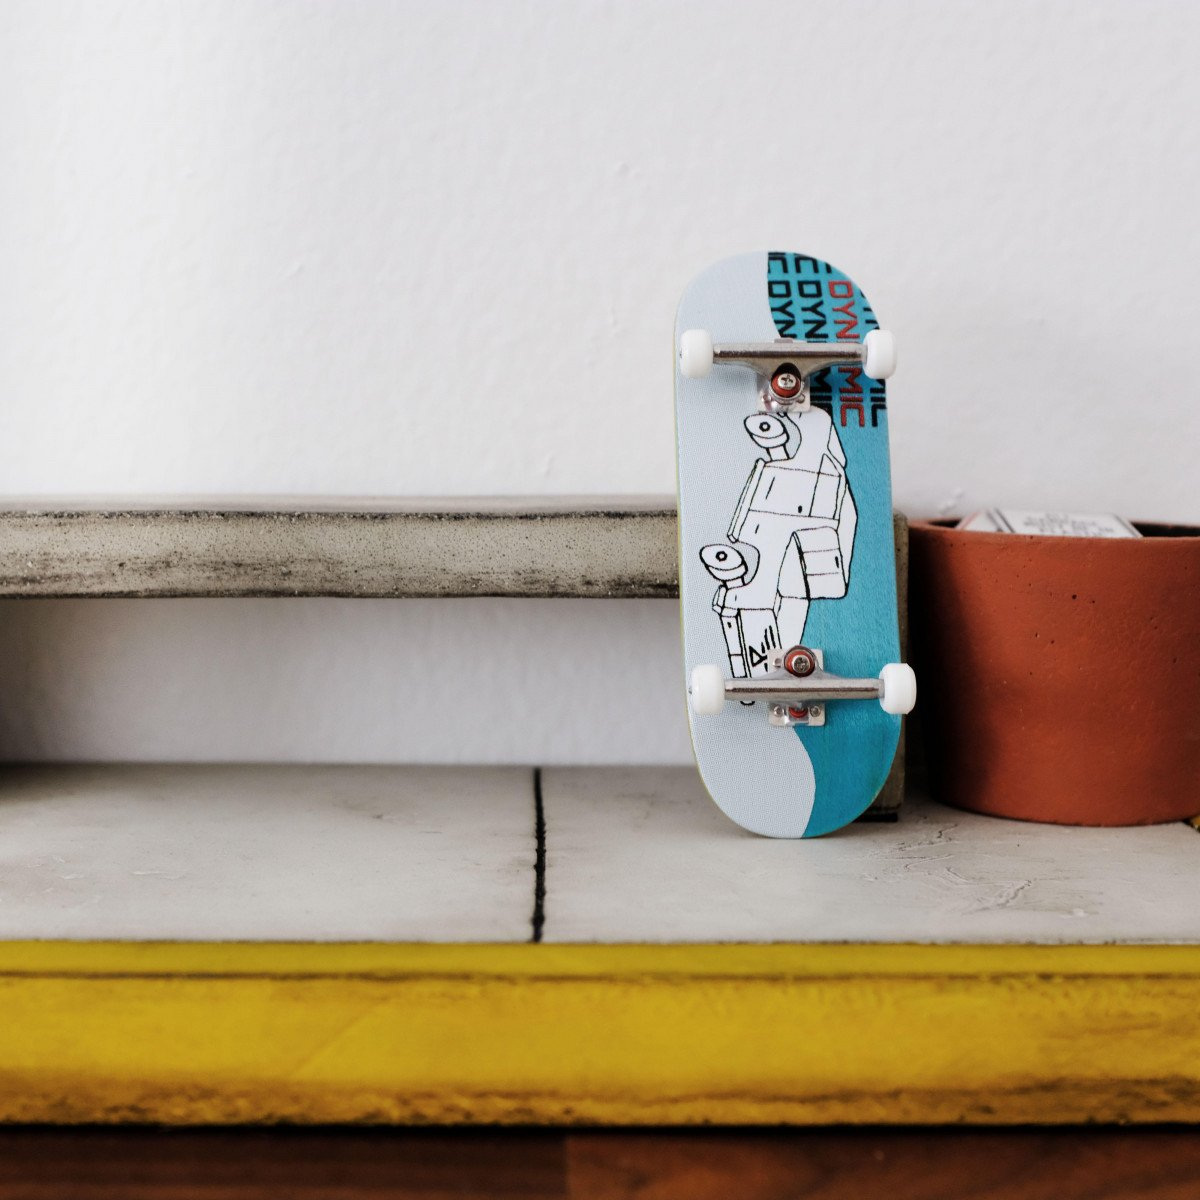 The Dynamic Fingerboards Blog - Our New Fingerboard News Source!